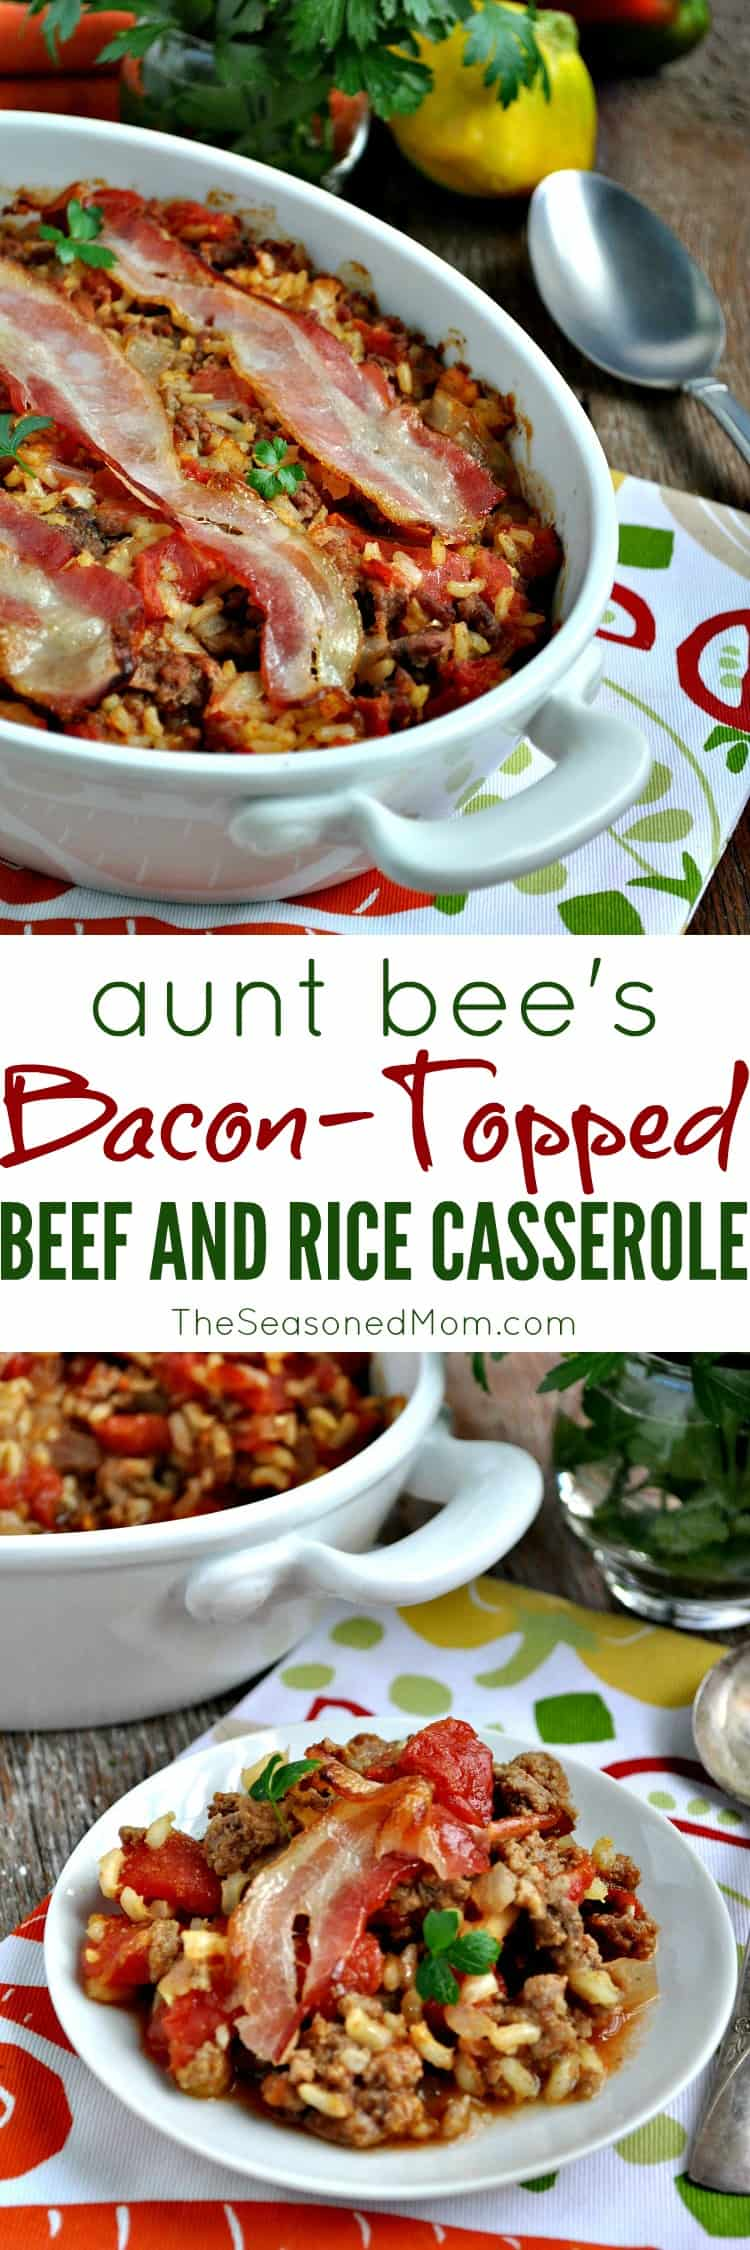 Bacon Topped Beef and Rice Casserole